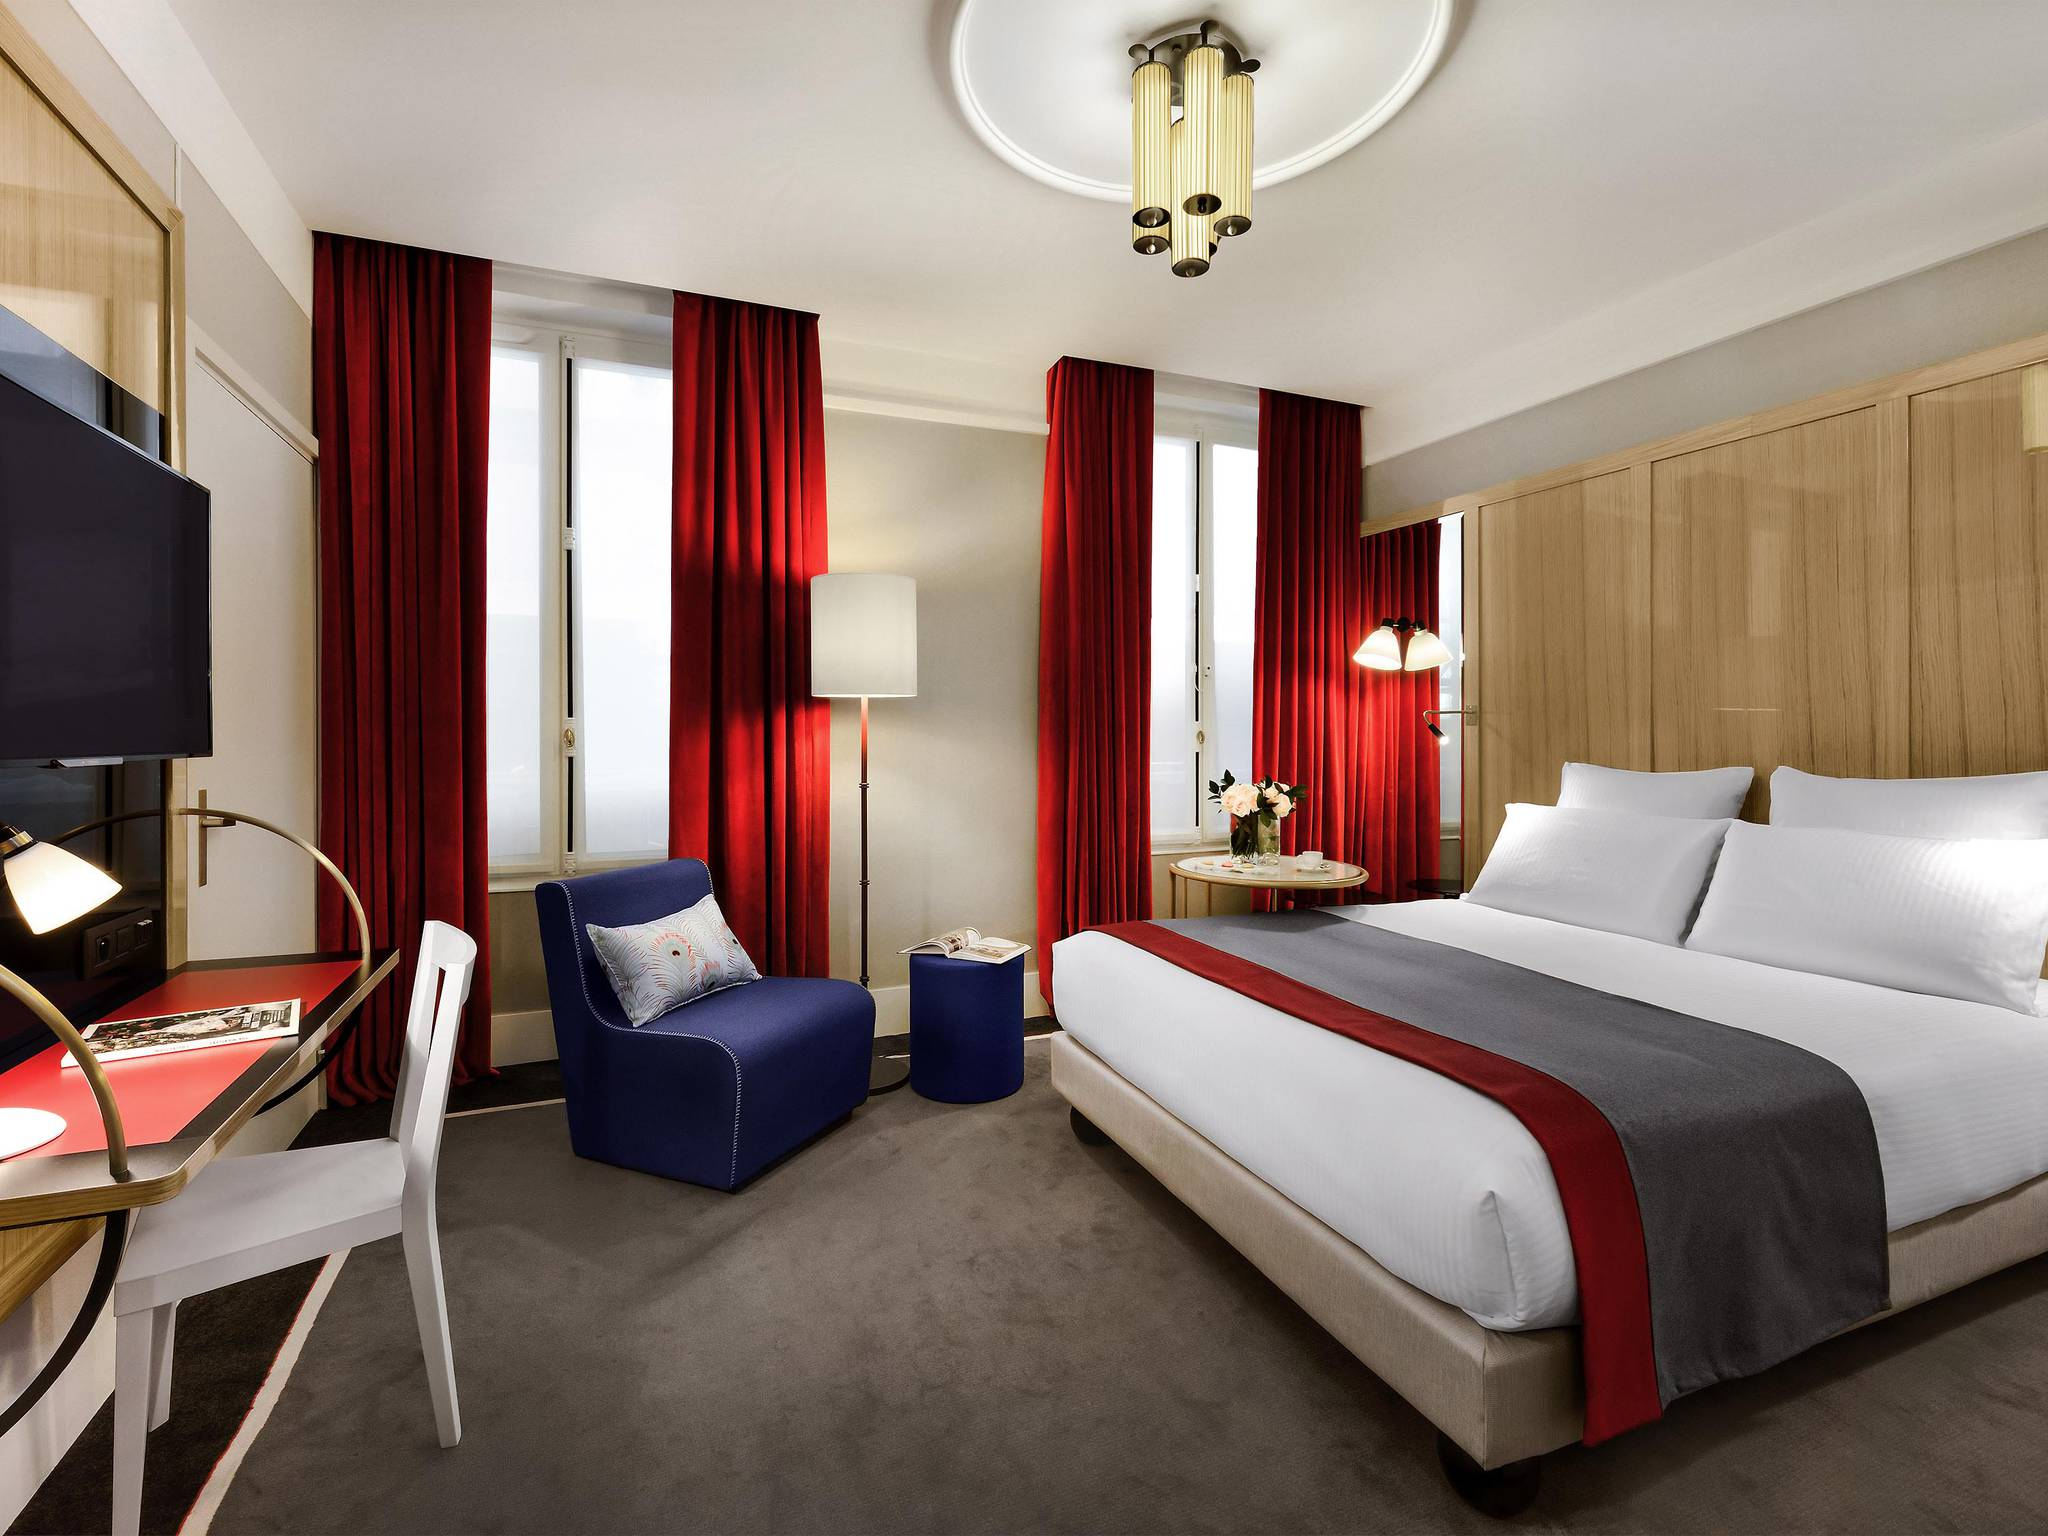 Hotel in PARIS - Hotel L\'Echiquier Opéra Paris - MGallery by Sofitel